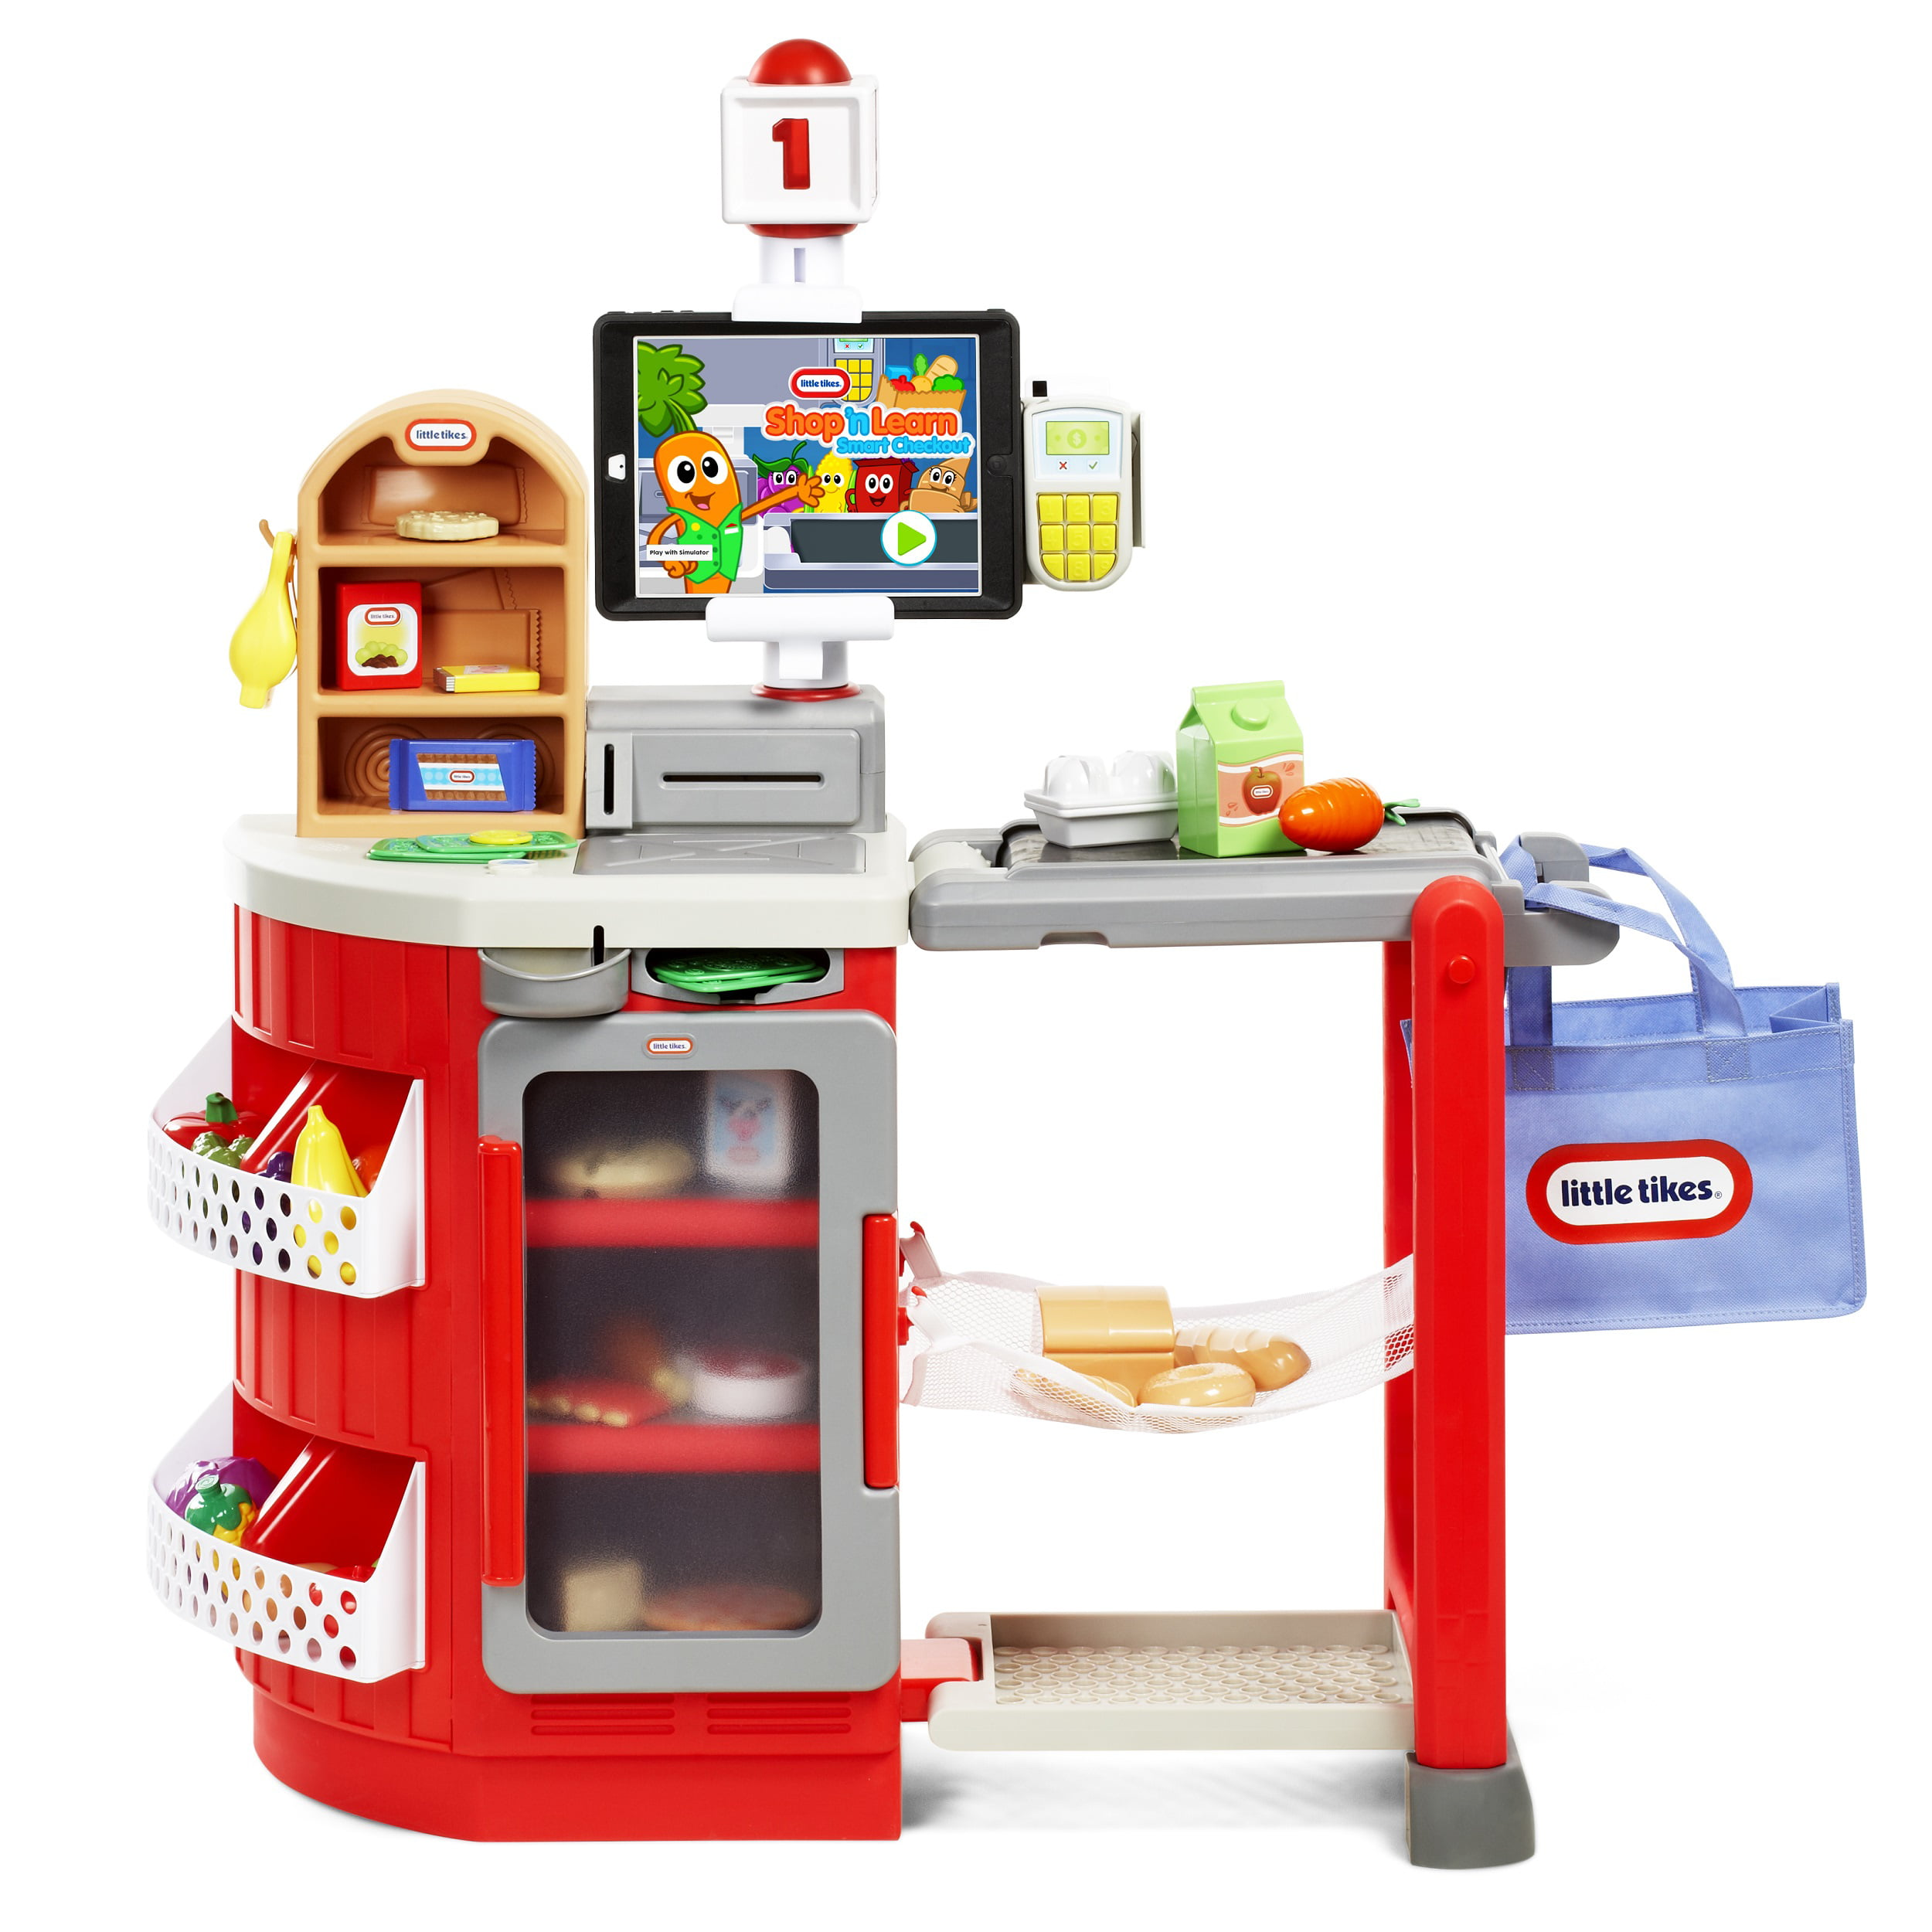 Little Tikes Shop 'n Learn Smart Checkout Role Play Toy by MGA Entertainment